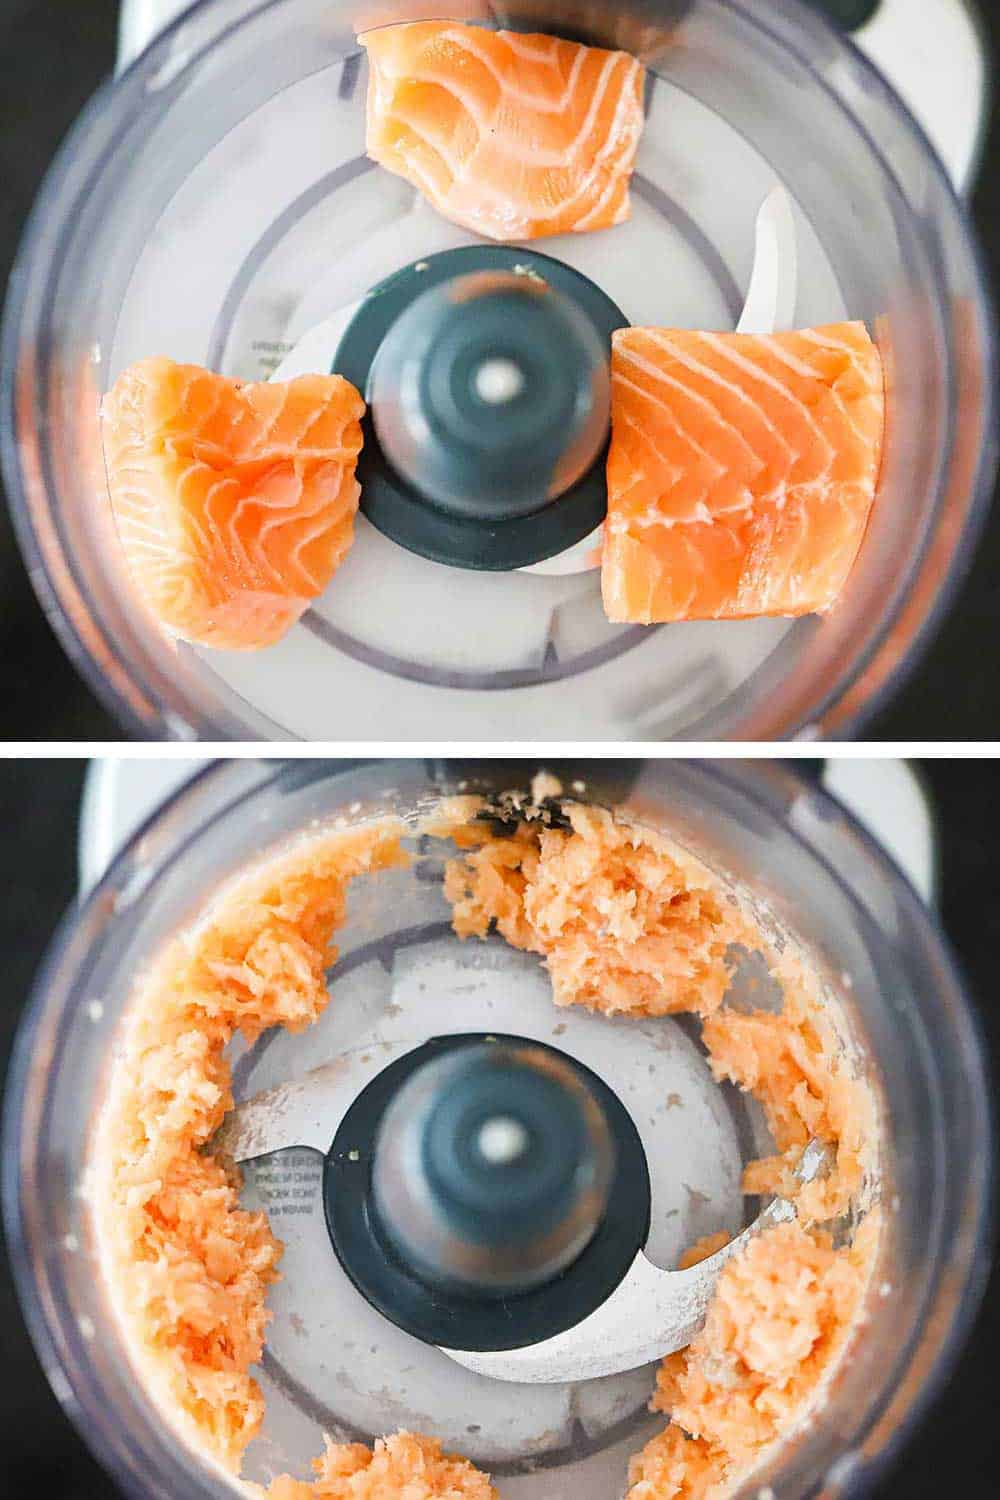 Several chunks of fresh salmon in a food processor and then that same salmon that has been processed to a smooth uniform texture.